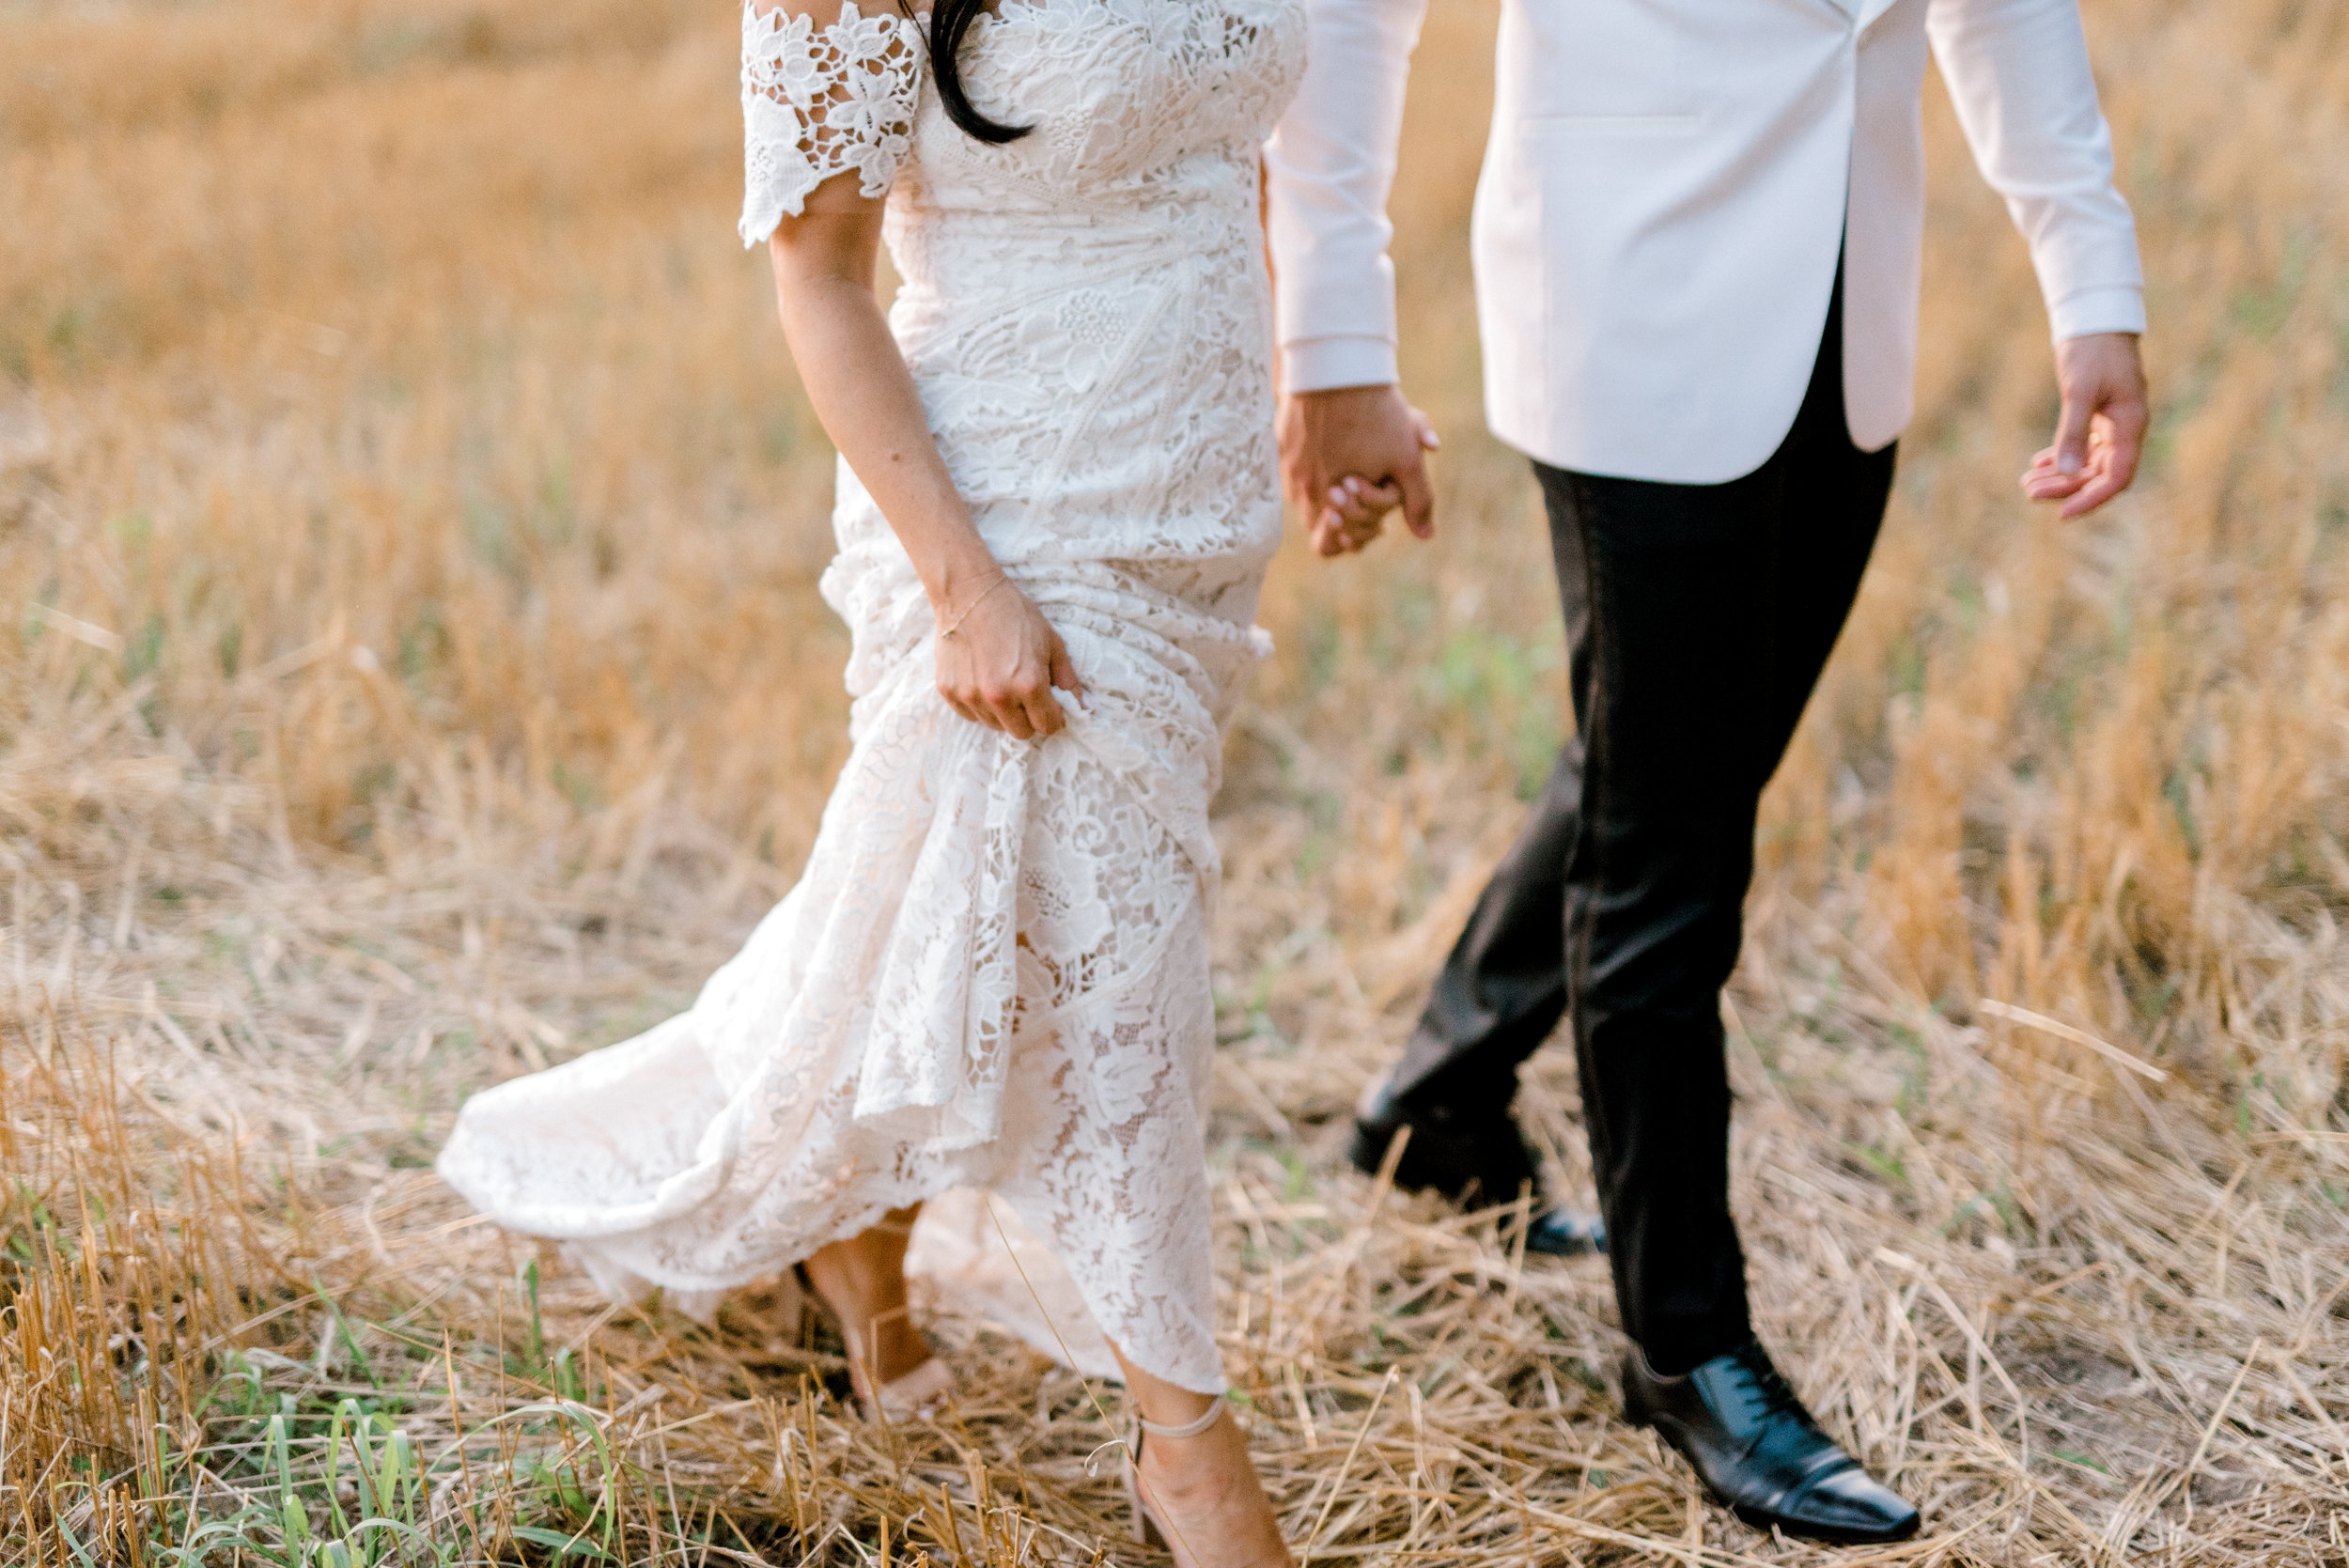 We love the gorgeous sunset out in the wheat field across from Hotel du Village. It's a perfect romantic spot for some end of the evening photos. We also love this classic with a modern twist look in black and white for a summer wedding day.